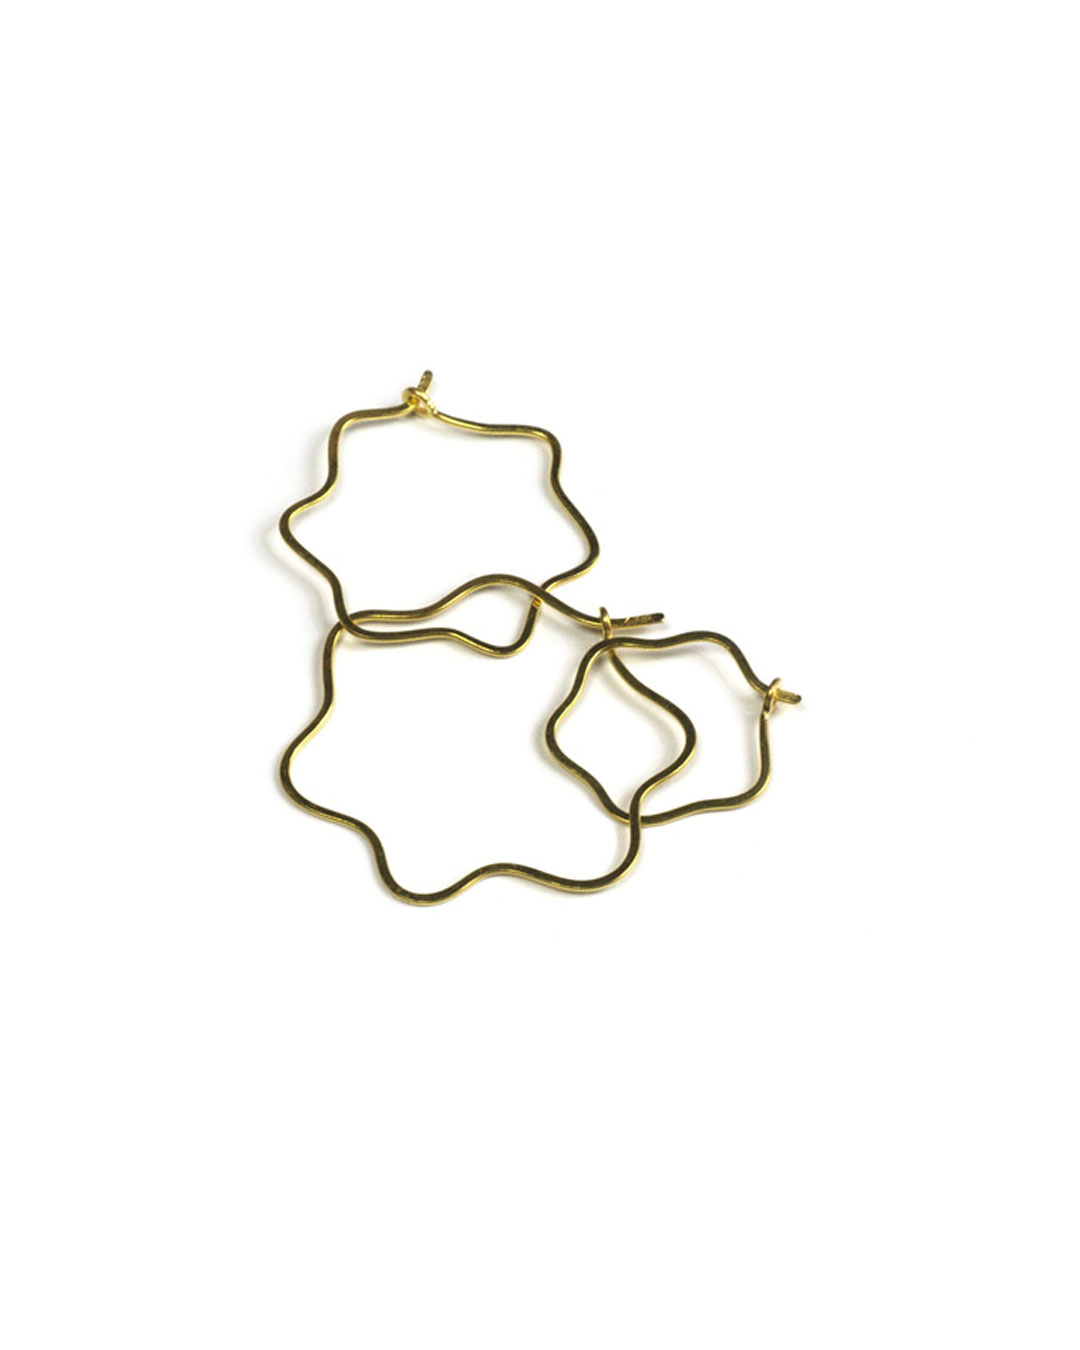 Annelies Planteijdt, untitled, 1987-2018, earrings; 18ct gold, 29 x 30 / 20 x 23 / 10 x 12 mm, €275